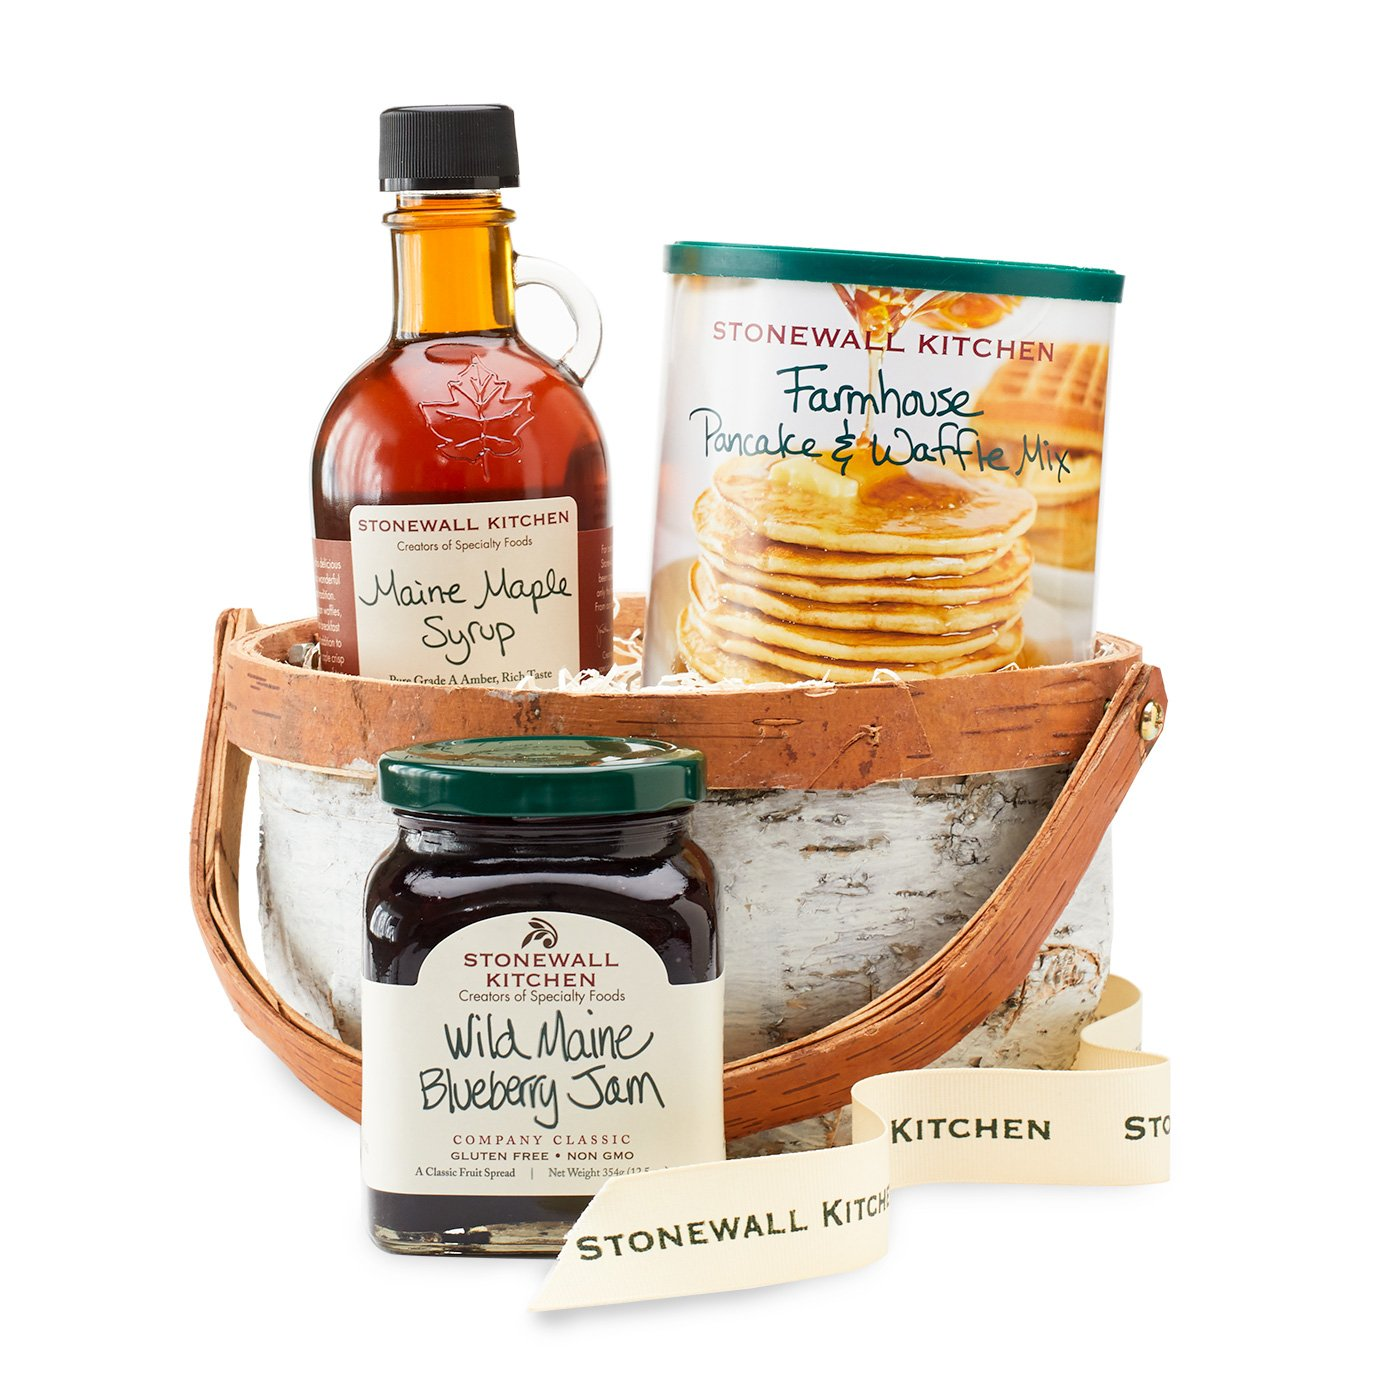 Kitchen Gift Baskets: Amazon.com : Stonewall Kitchen Gift Collection And Sets